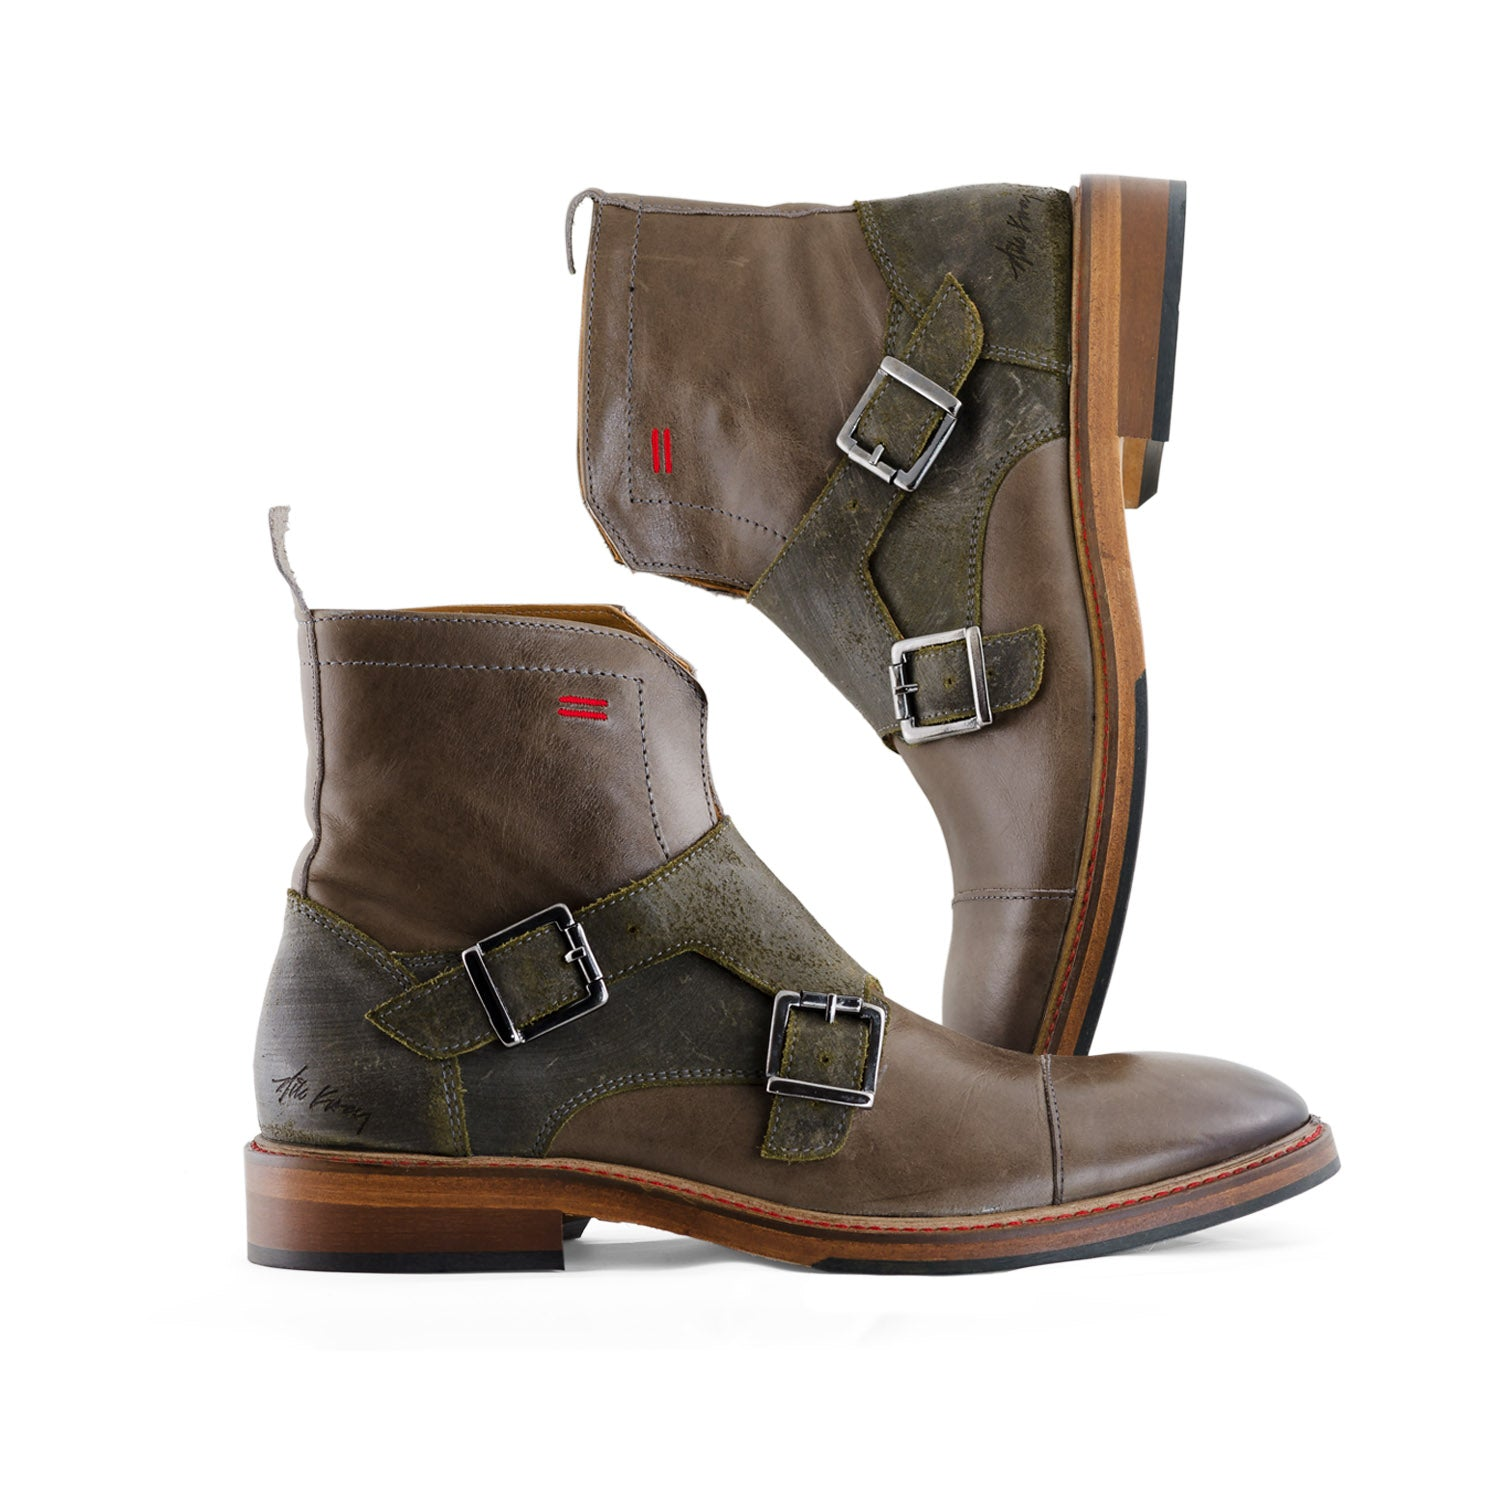 NiK Kacy Gender-Equal Gender-Neutral Luxury Monkstrap Boots in Desert Green and Grey Genuine Leather